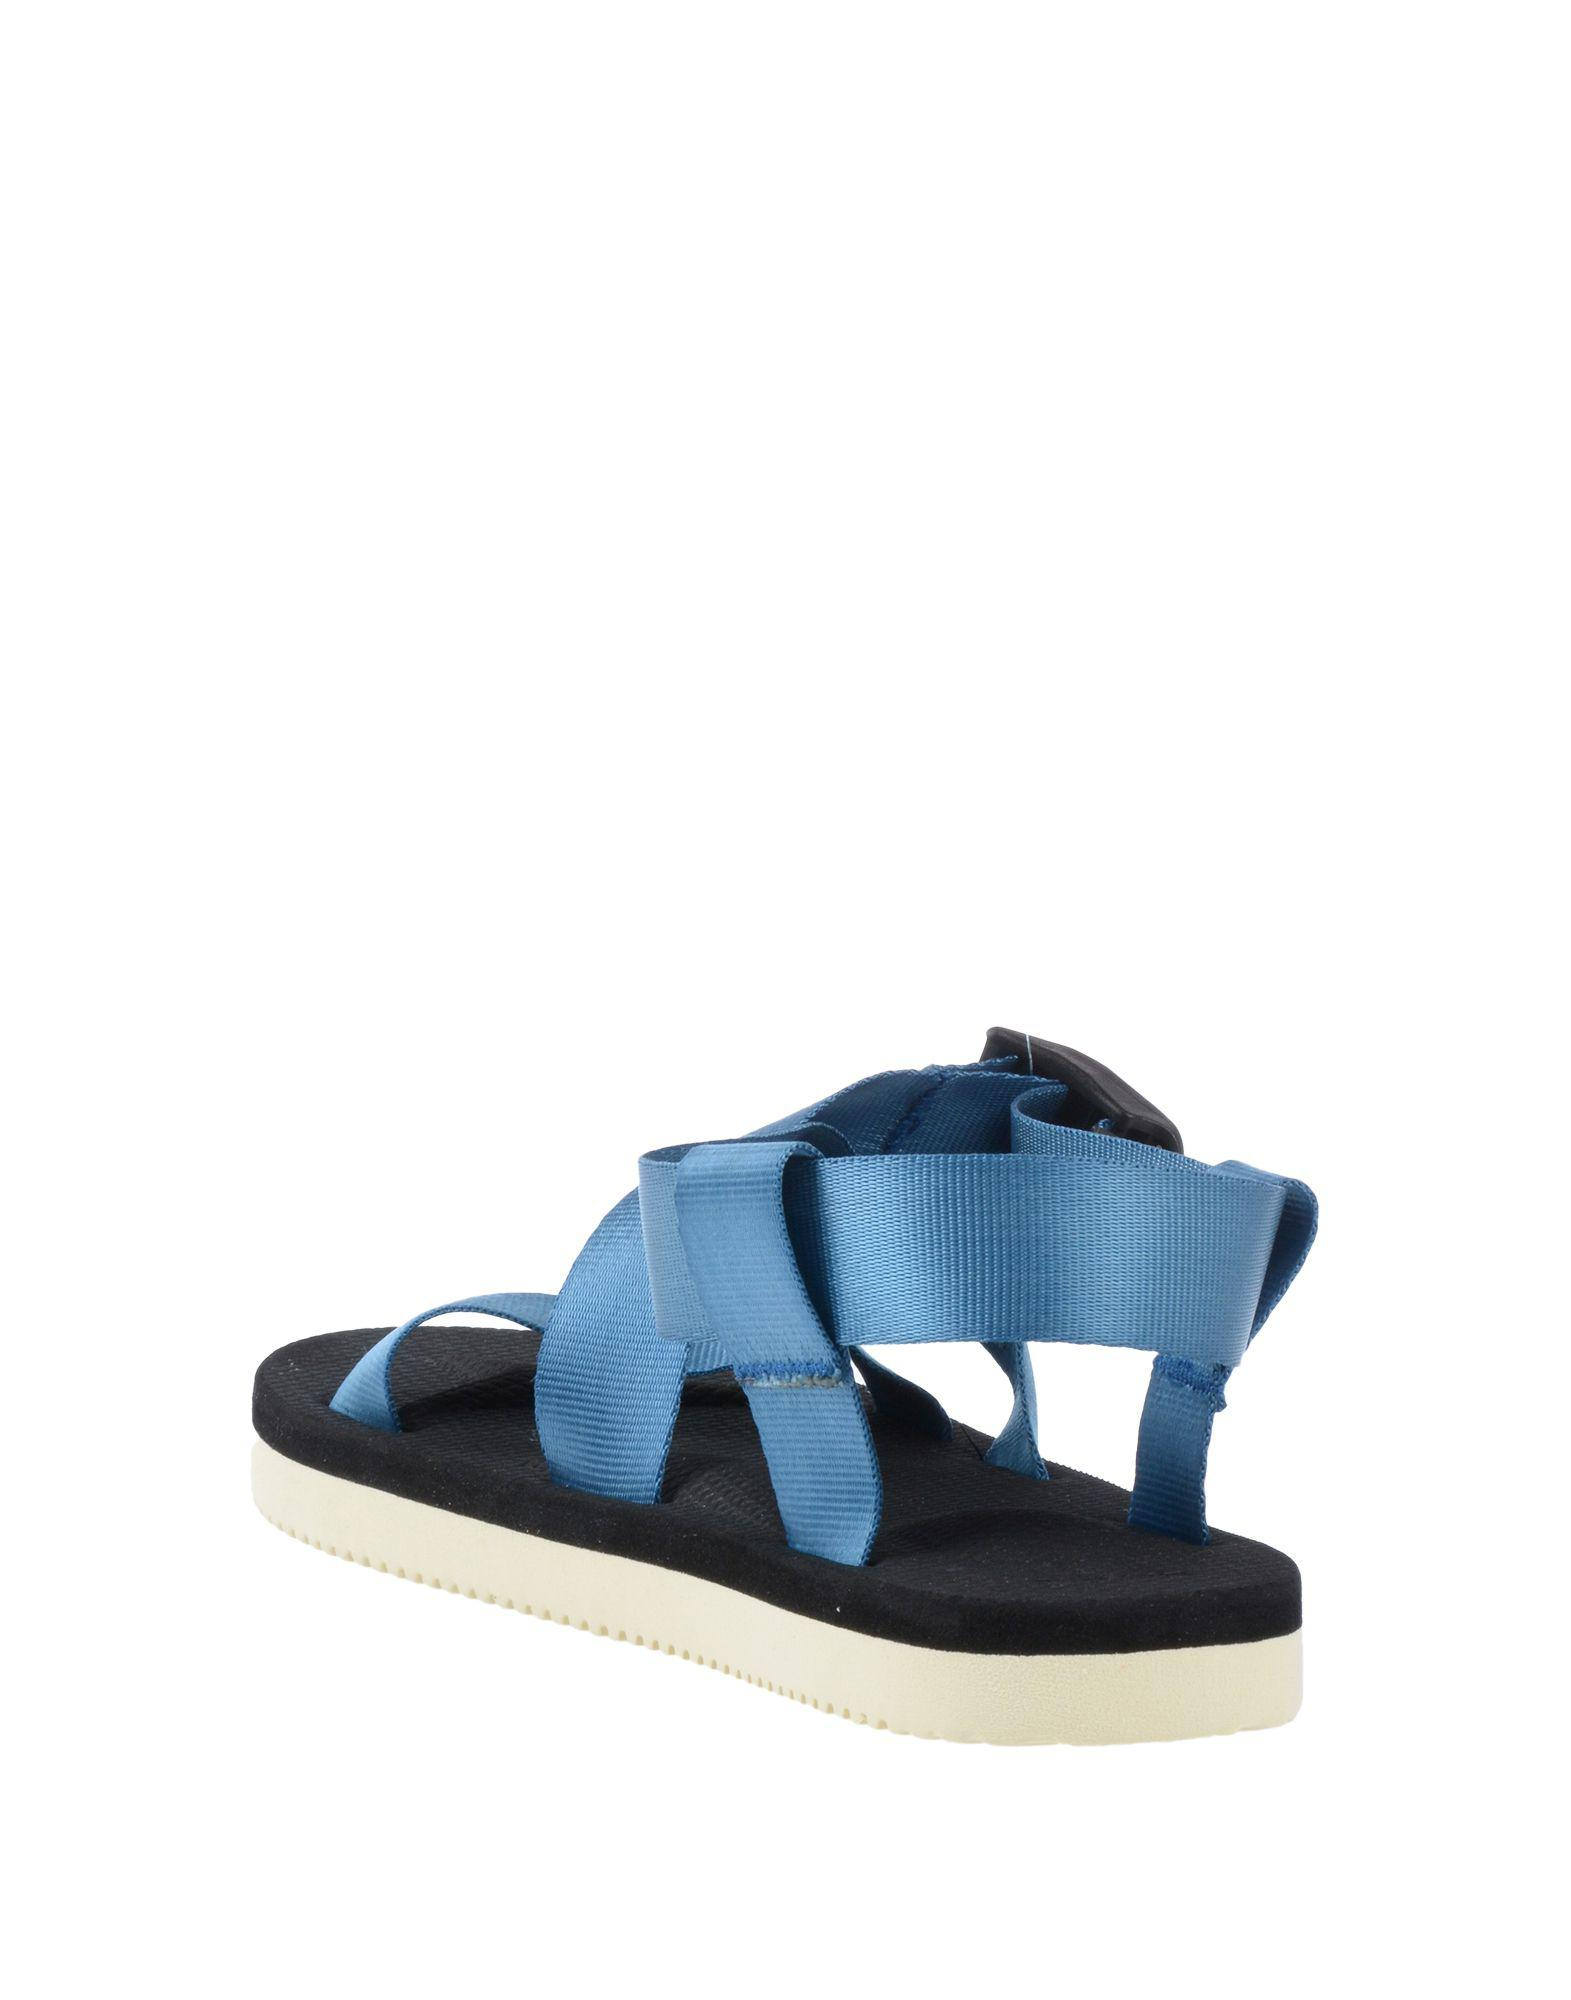 38f8240877d Suicoke Sandals in Blue for Men - Lyst